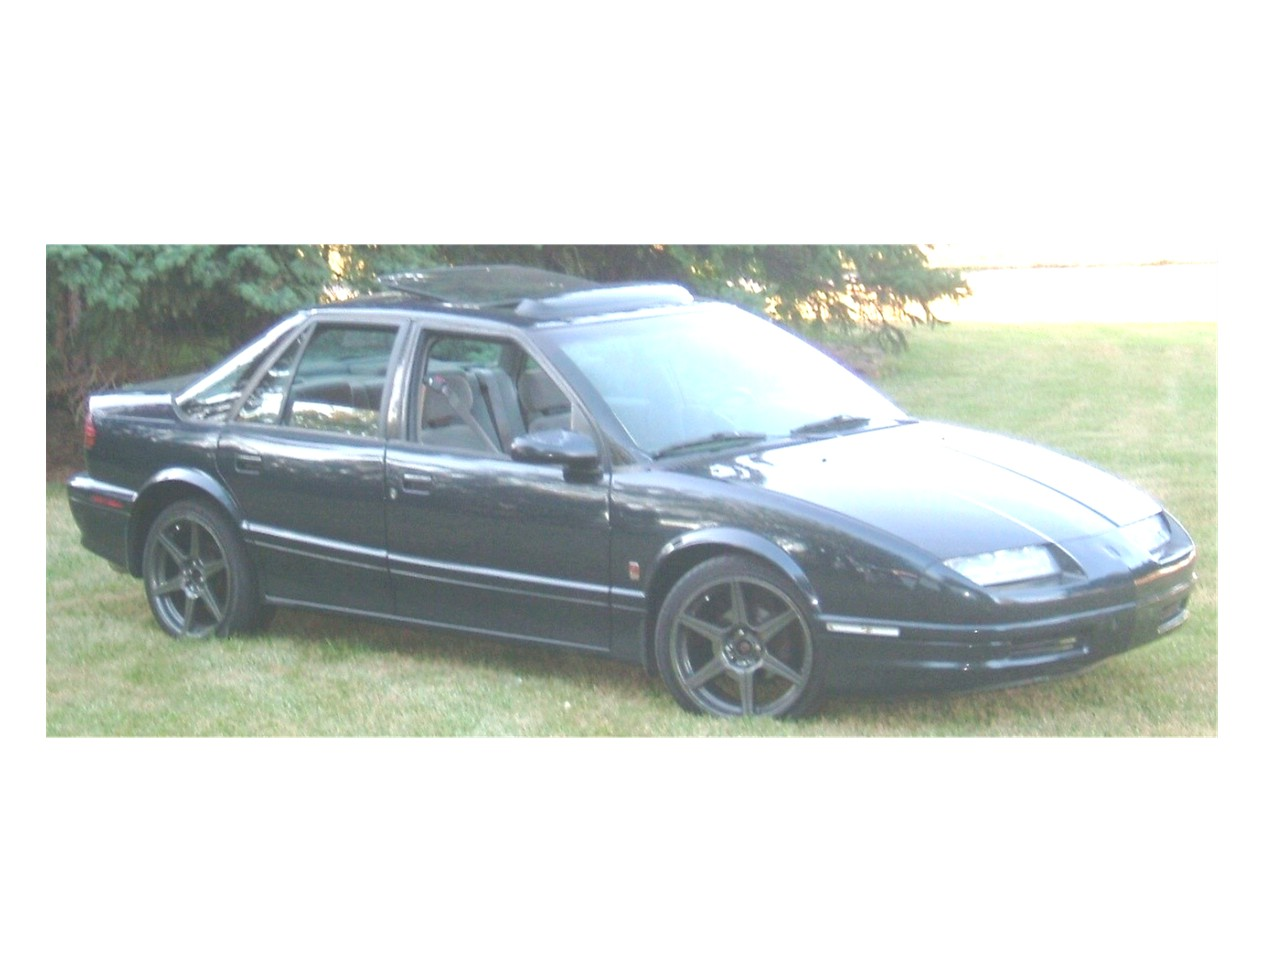 1992 Saturn SL2 twin cam